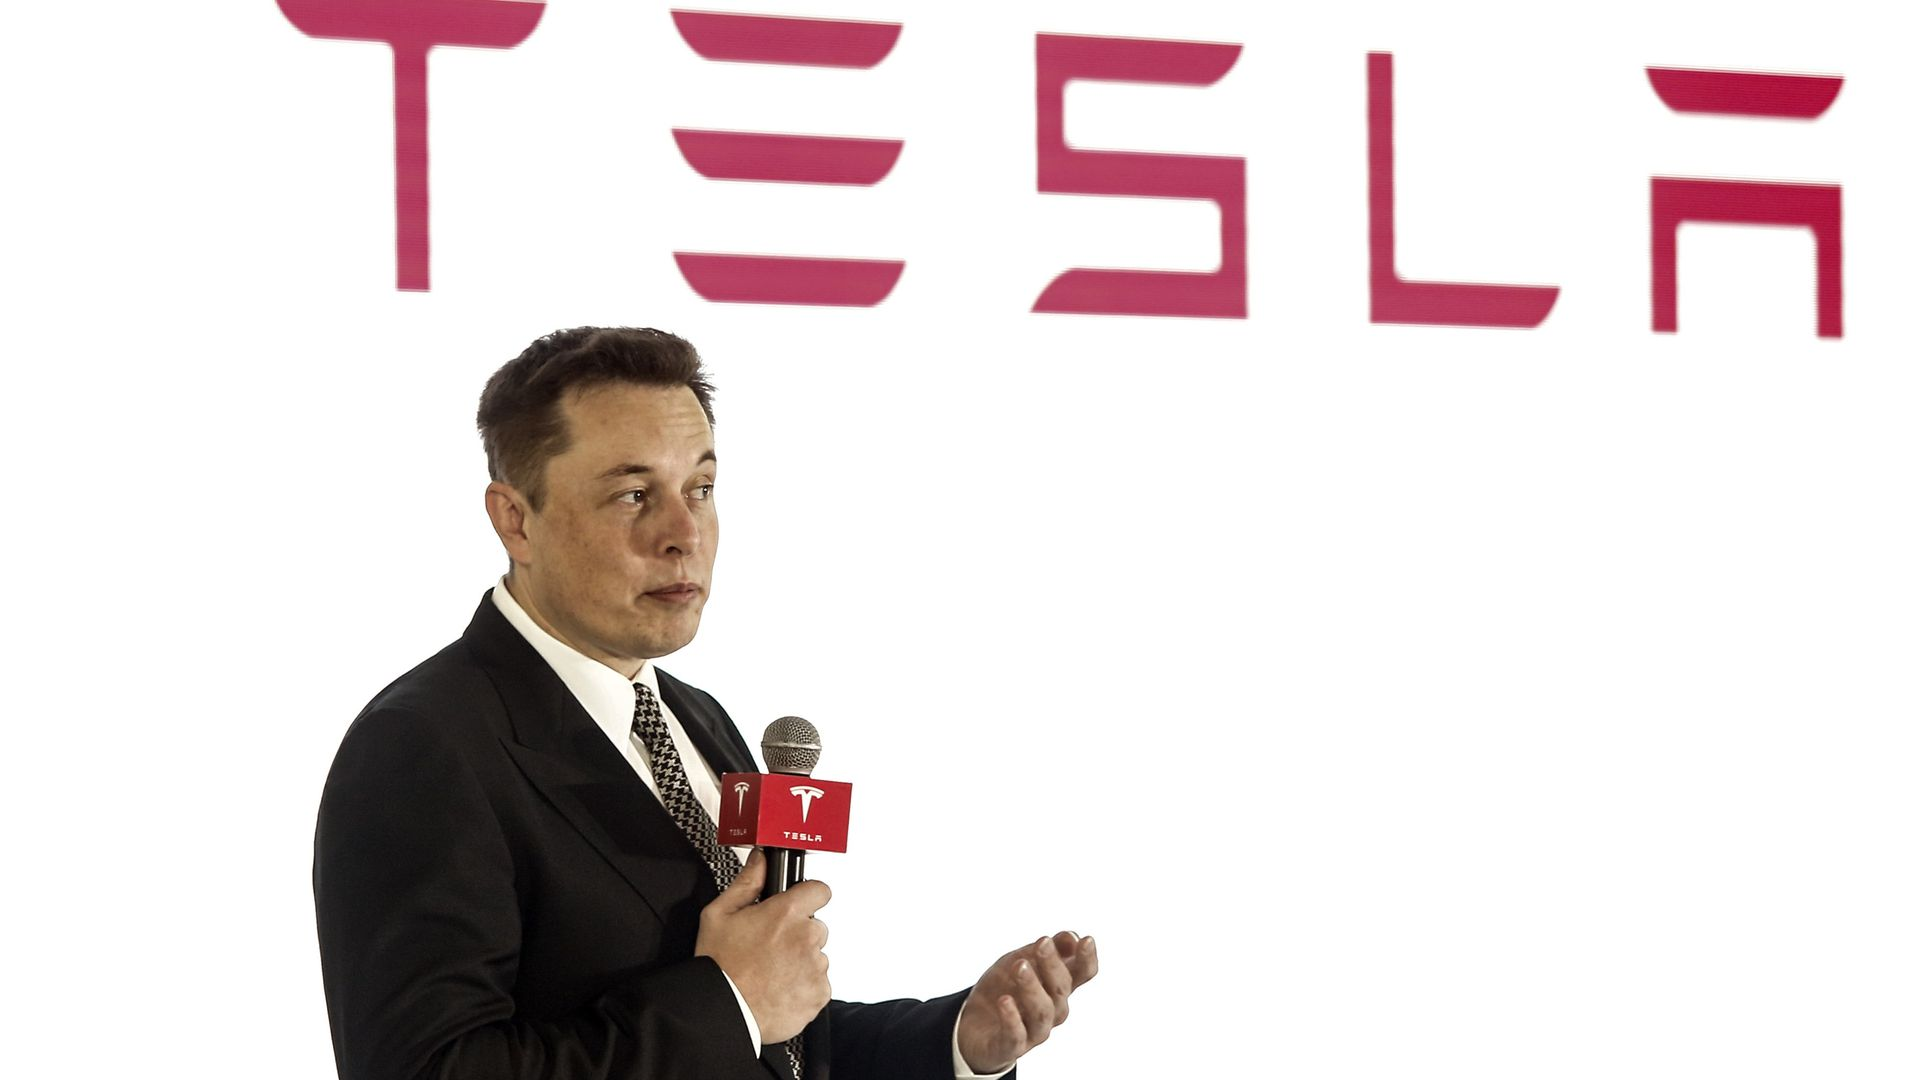 Elon mUsk in a suit on a stage with a microphone.